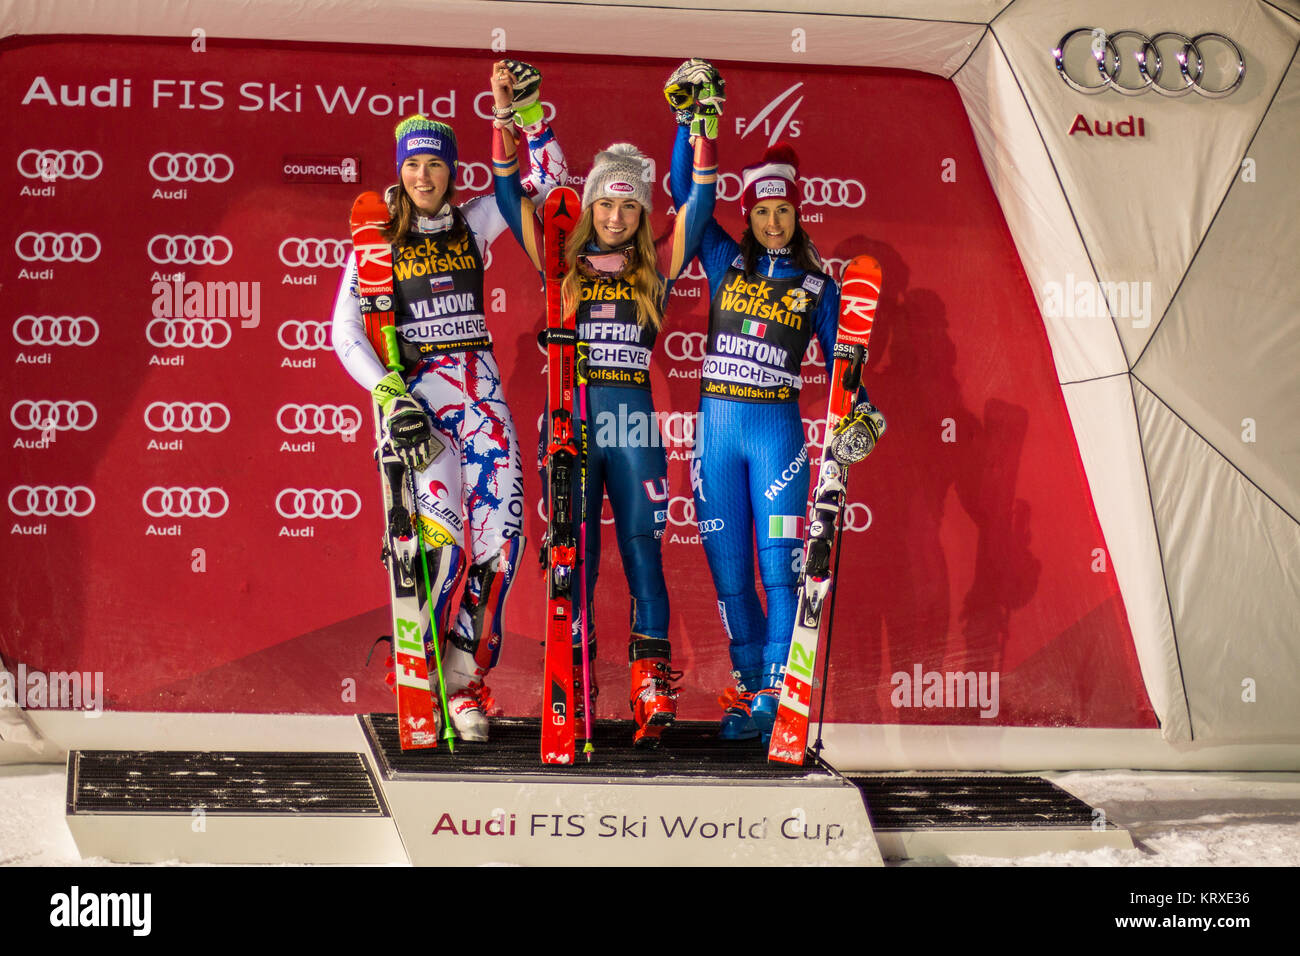 Courchevel, France. 20th Dec, 2017. Podium Presentation with the winner Mikaela Shiffrin of USA, Petra Vlhova of - Stock Image